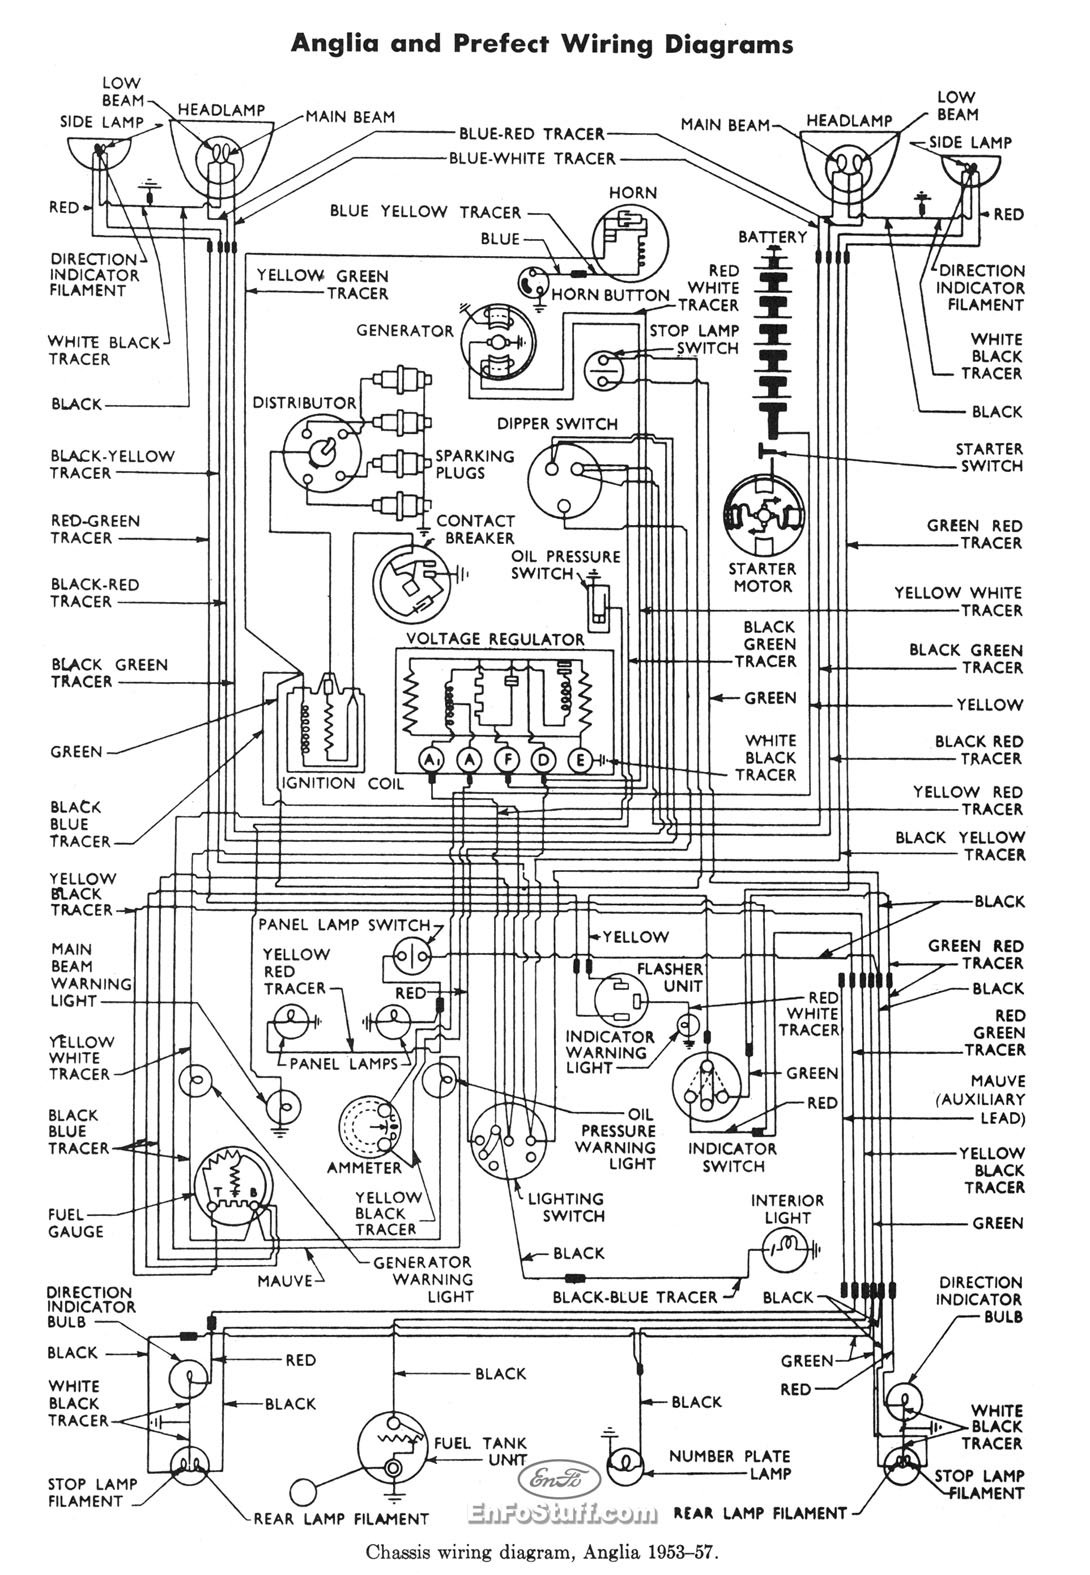 ford anglia 1953 57 wiring diagram wiring diagram for ford anglia 1953 57 1970 ford wiring diagram at soozxer.org